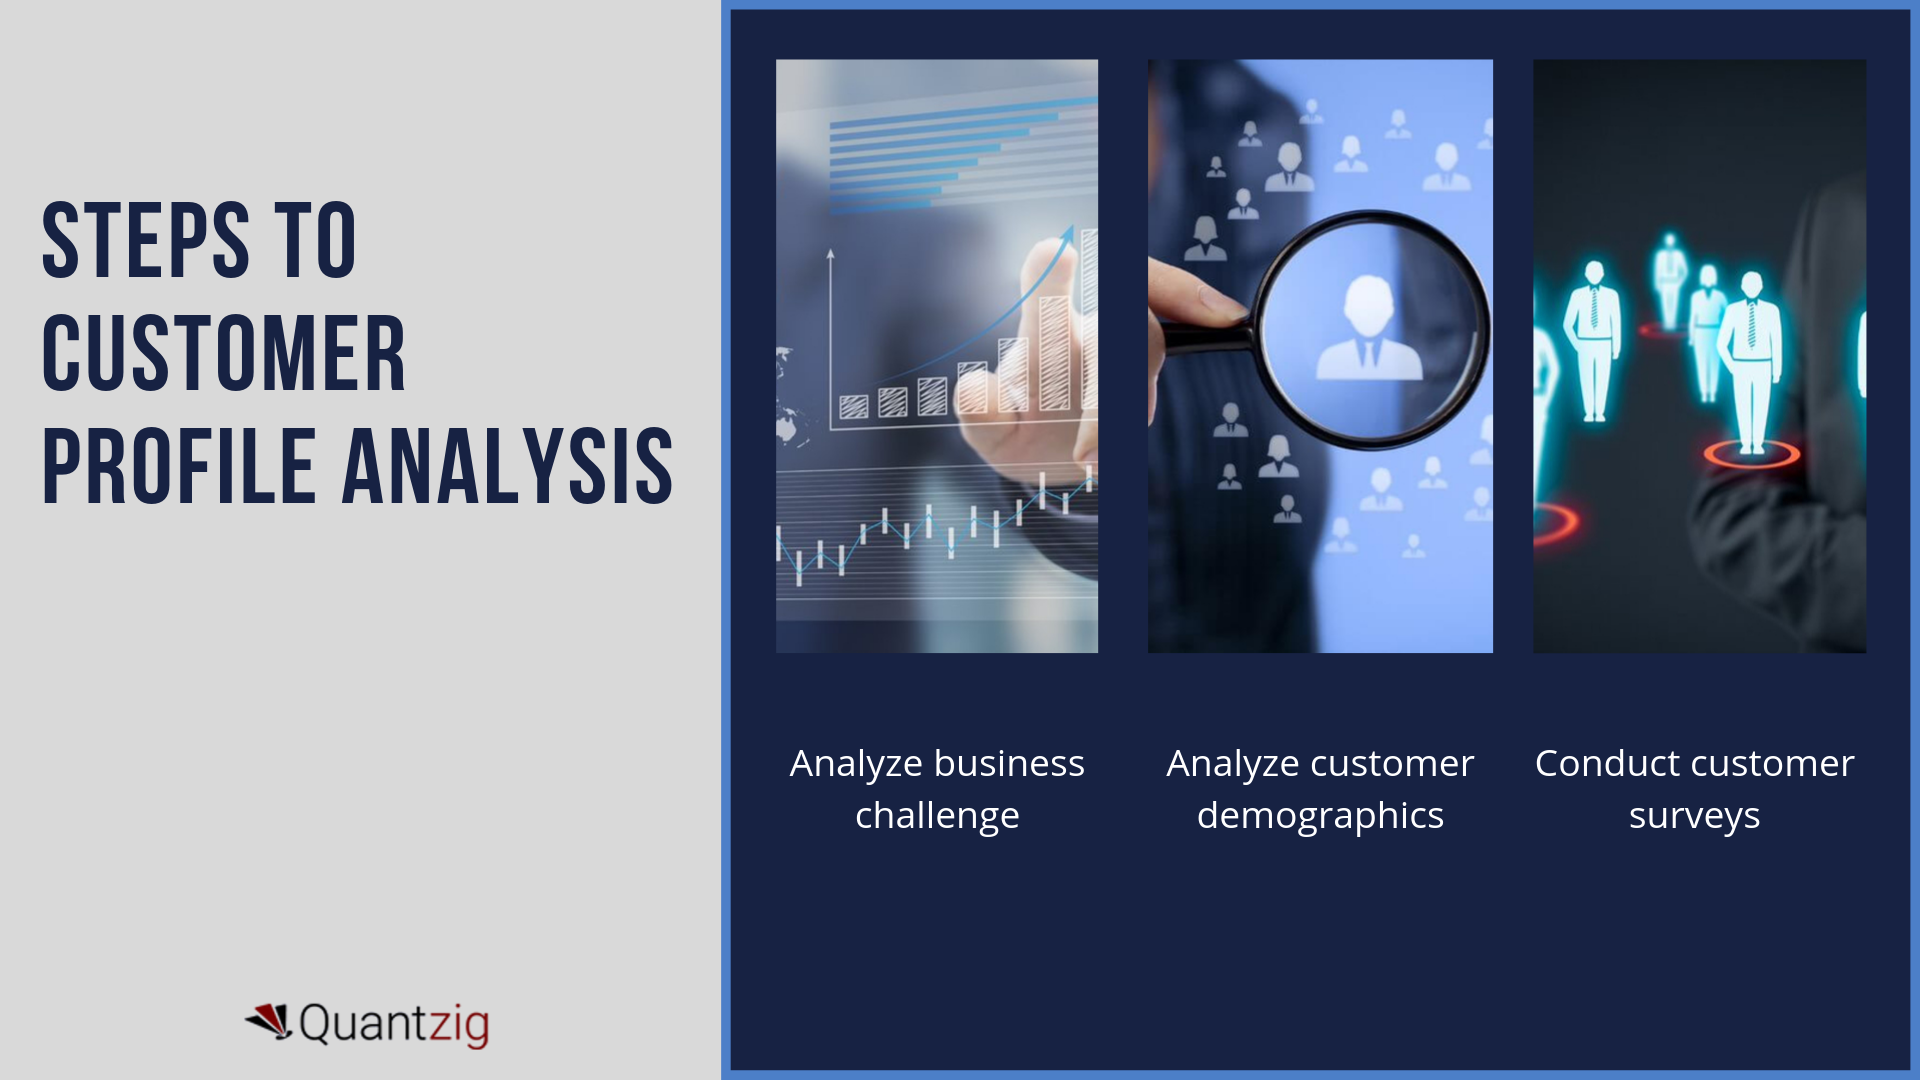 CUSTOMER PROFILE ANALYSIS